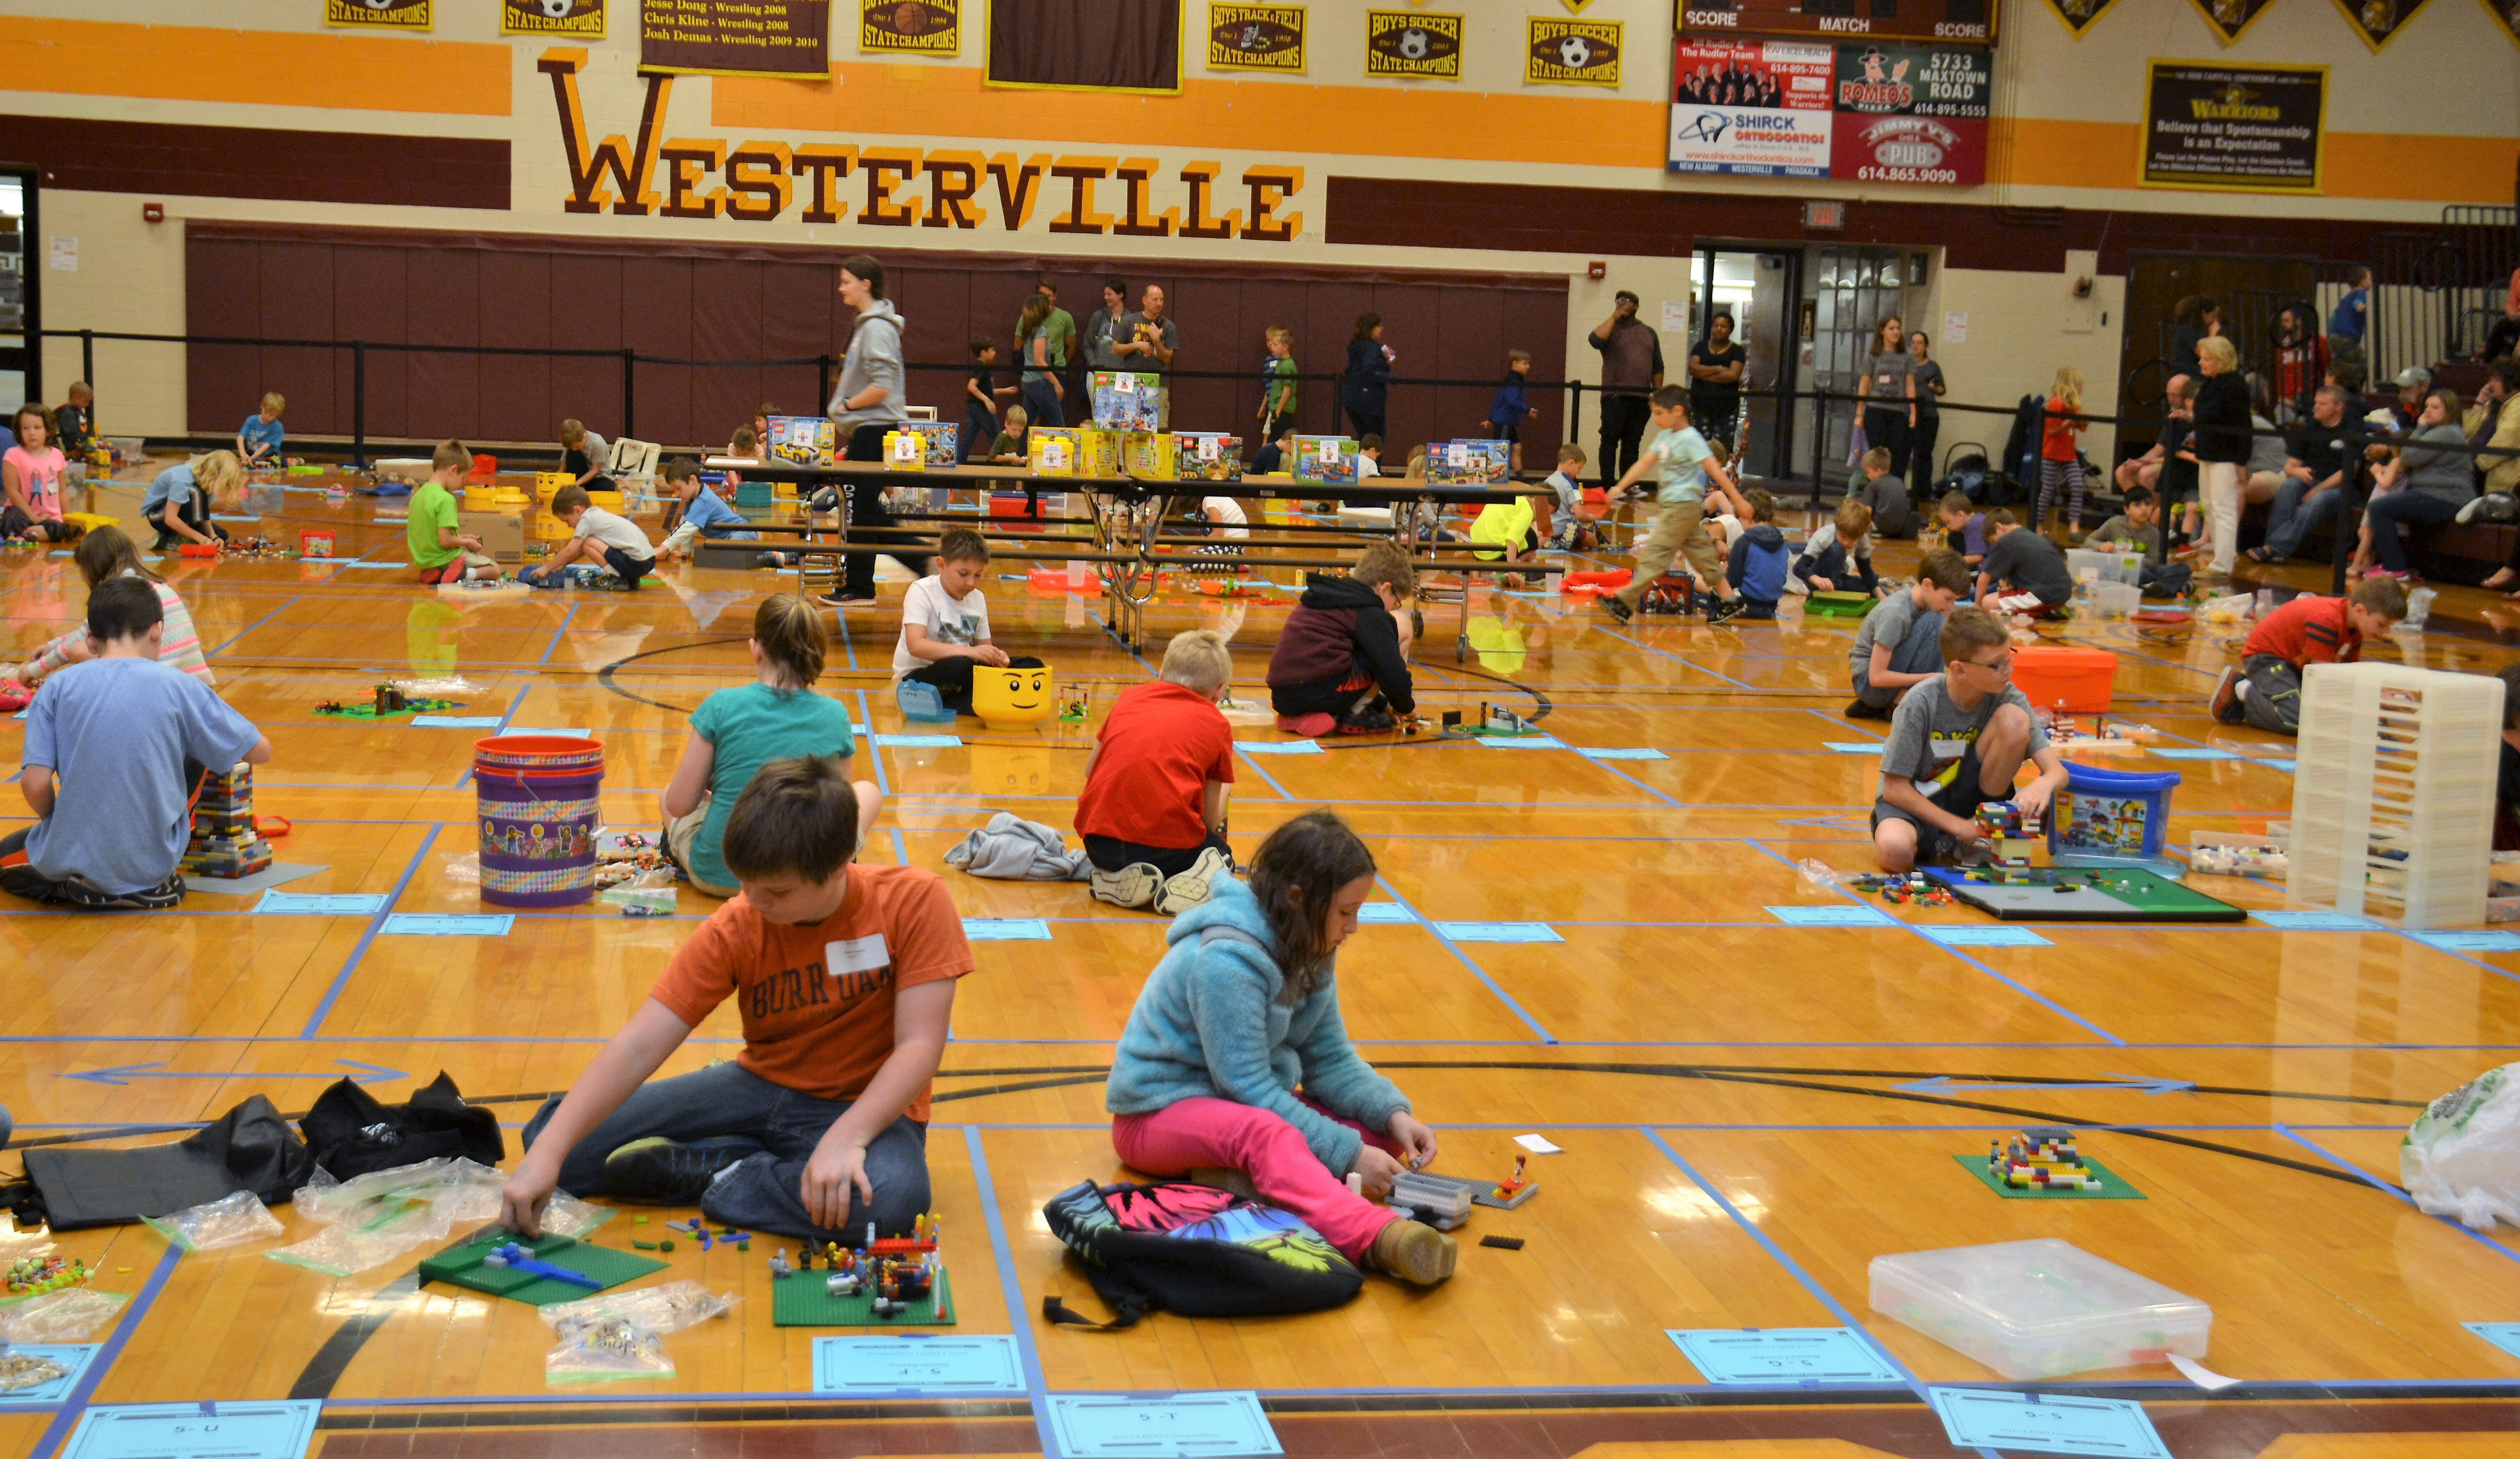 Dozens of students building with Legos on the gym floor at WNHS.